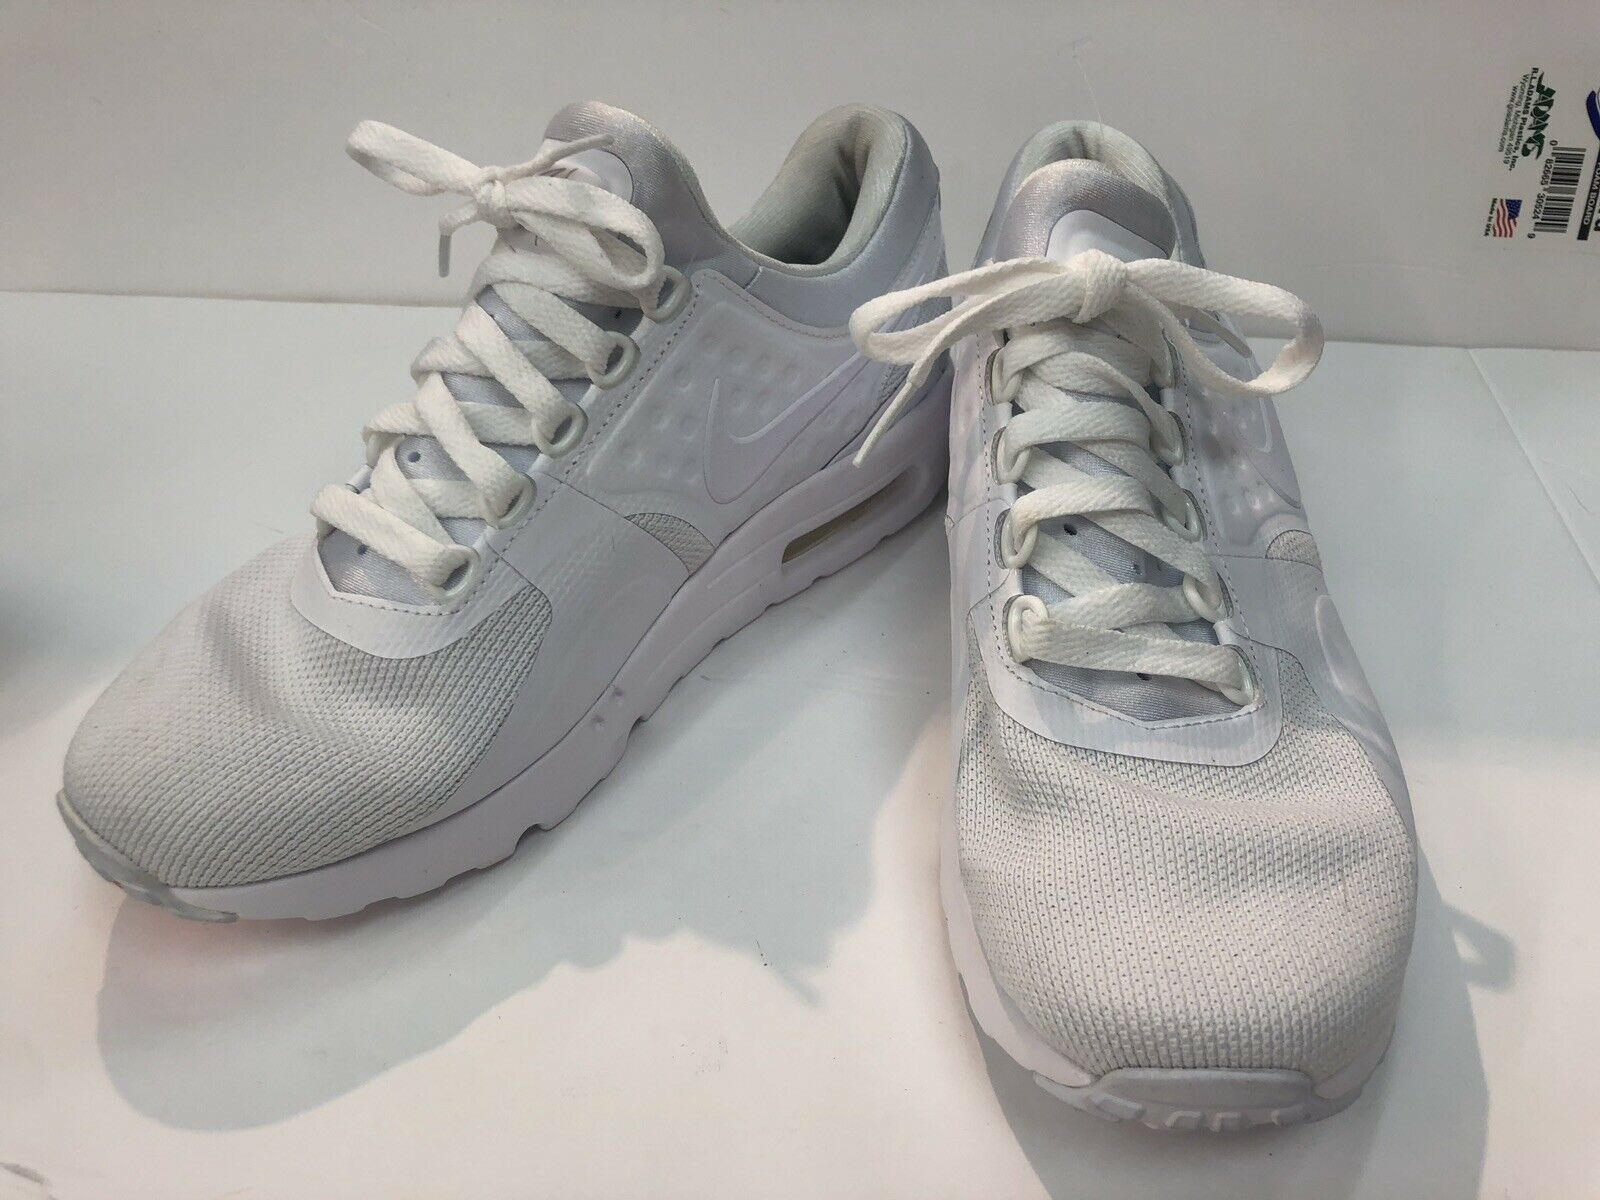 NIKE AIR MAX ZERO ESSENTIAL MENS ATHLETIC SHOES 876070 100 WHITEWHITE WOLF GREY